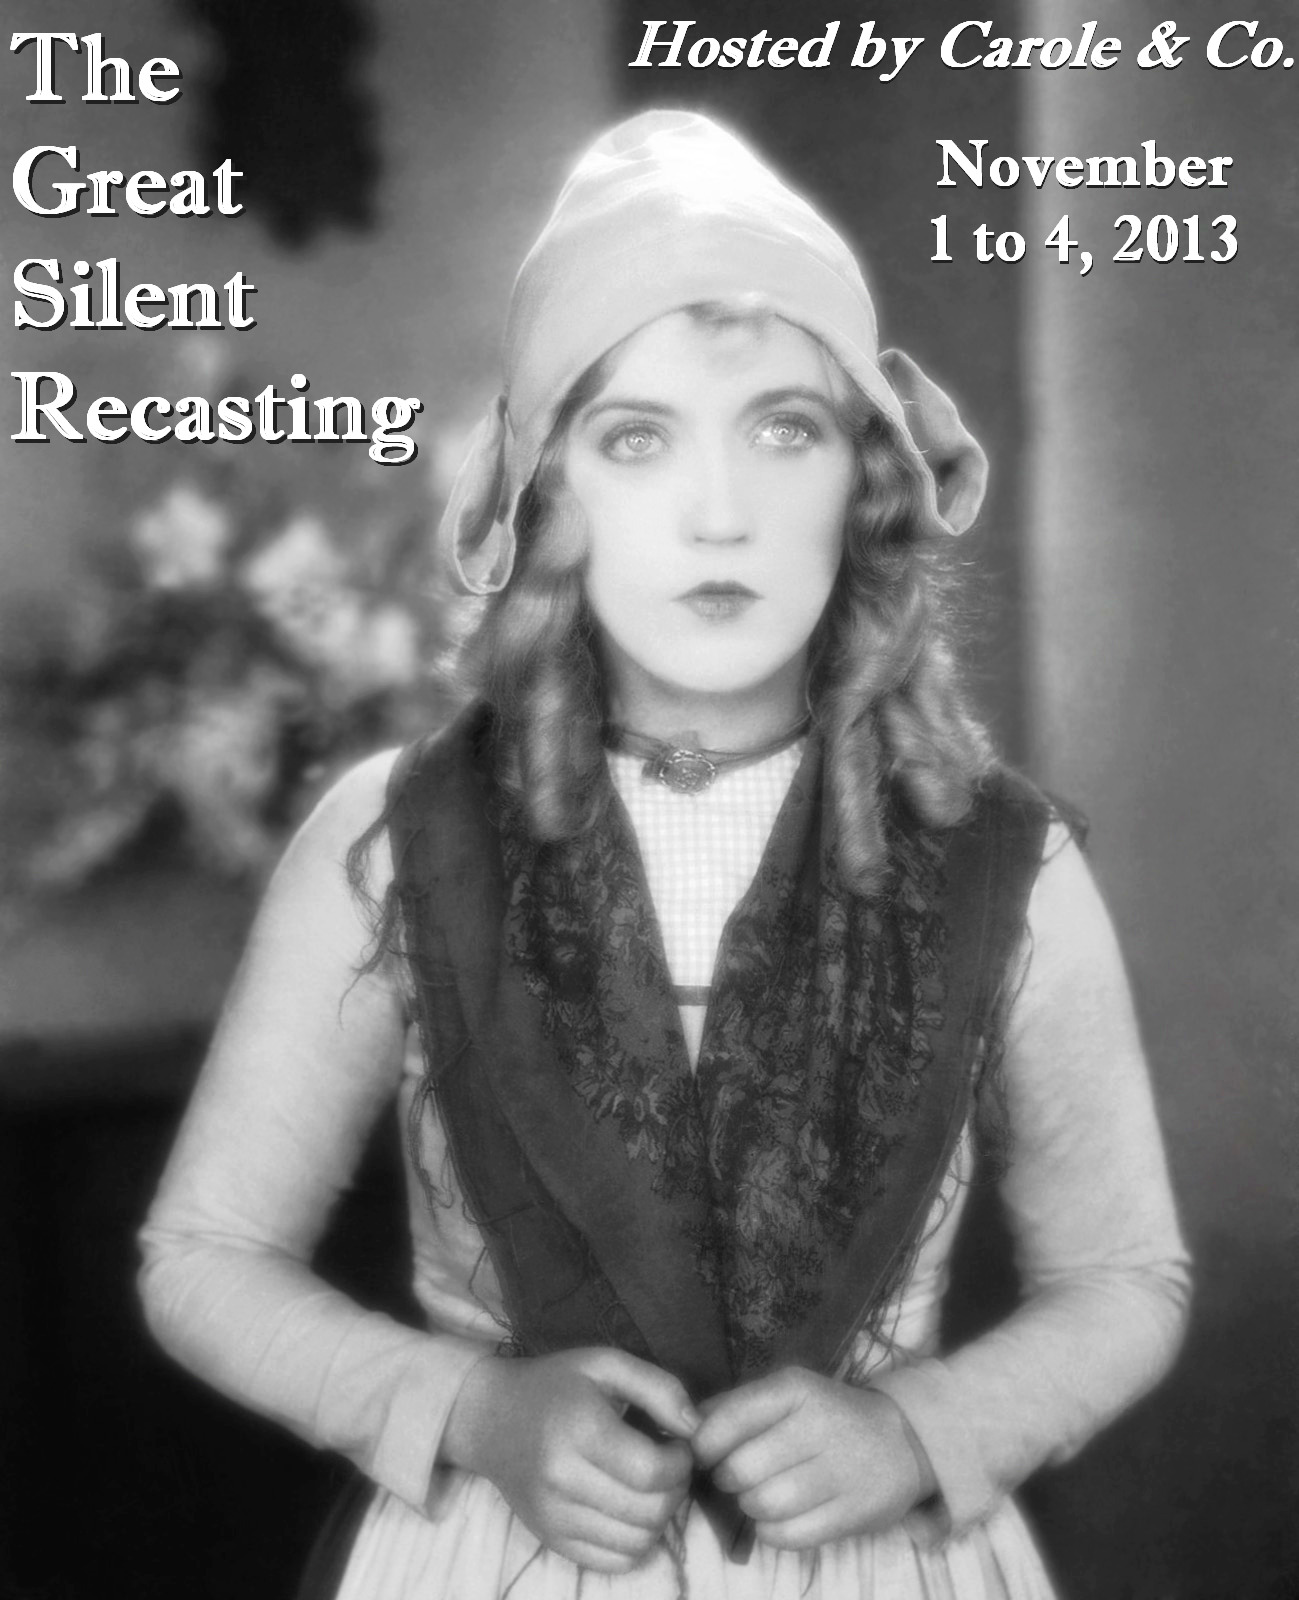 the great silent recasting 2013 marion davies 00a